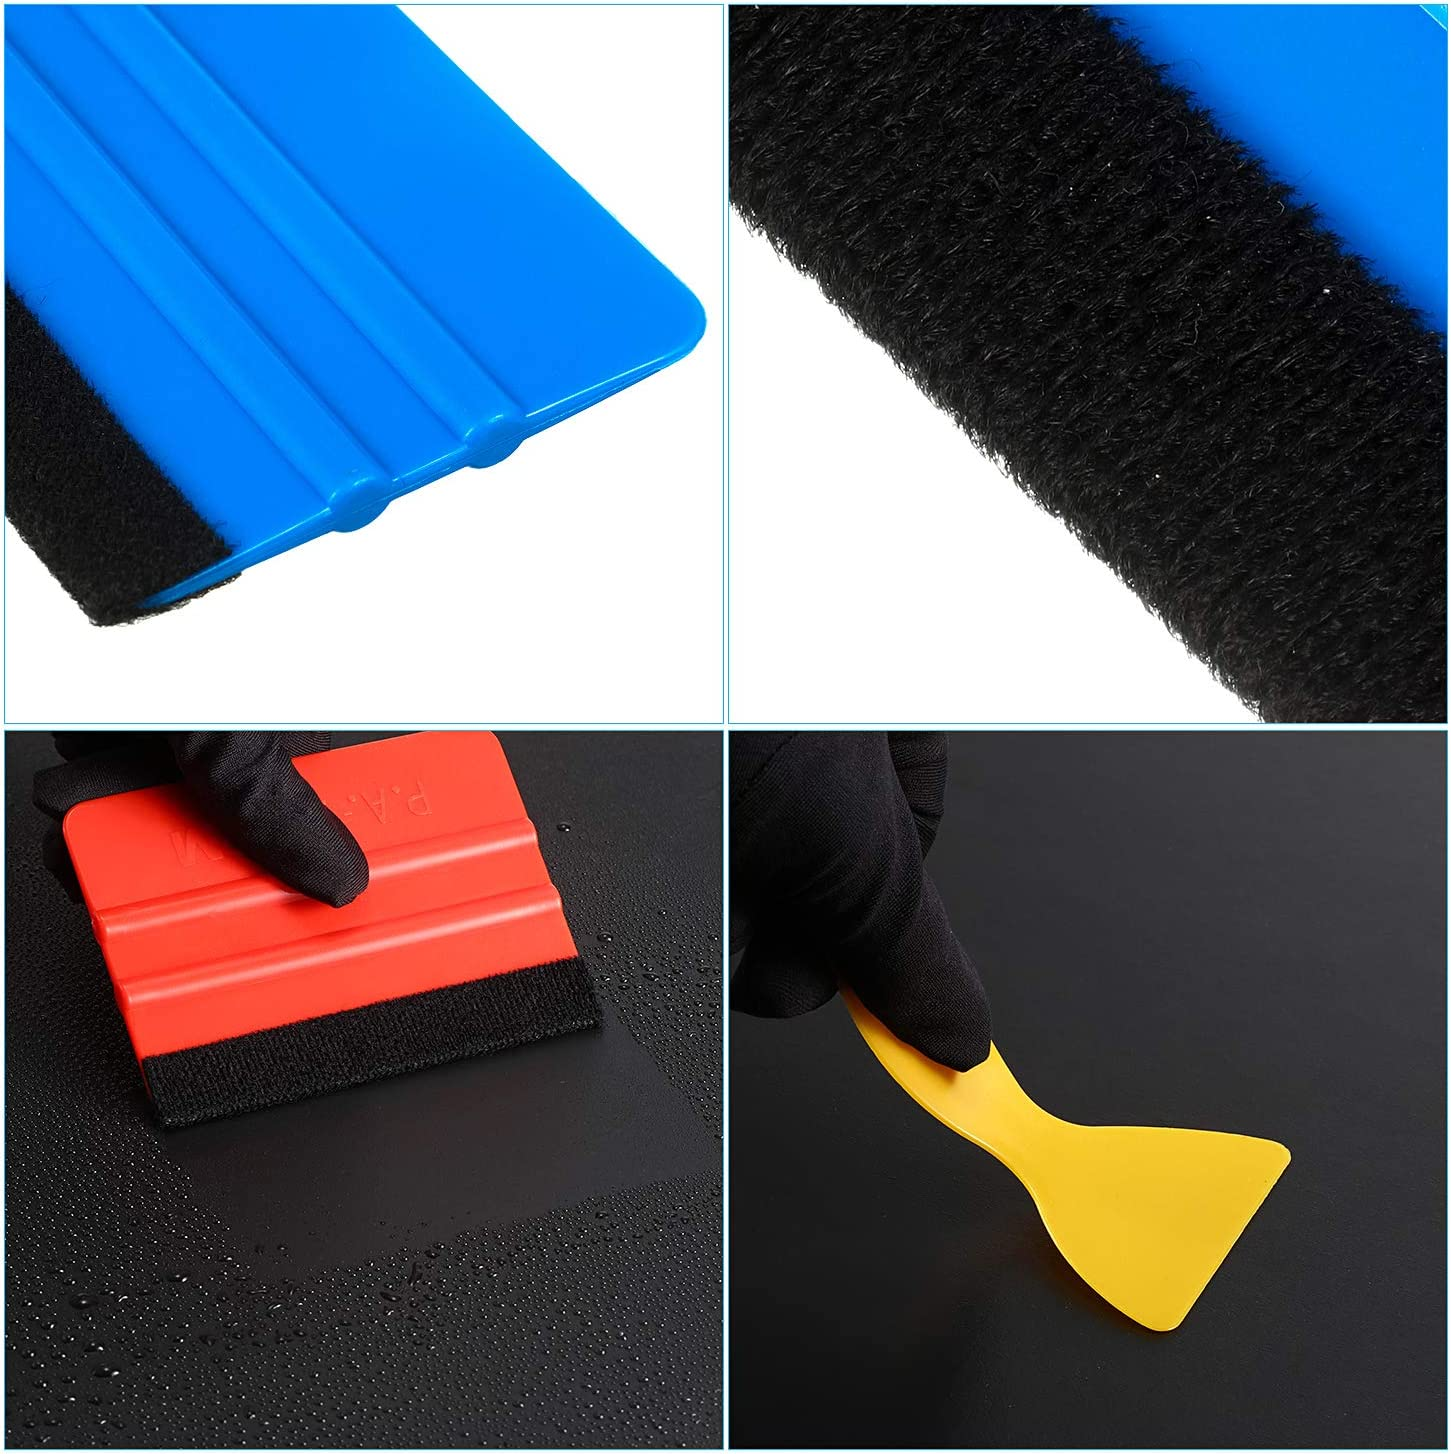 BBTO 6 Pieces Felt Edge Squeegee Car Wrapping Tool Kits with Straight Scraper and Triangle Scraper for Car Vinyl Wrap Wallpaper Window Tint Decal Sticker Installation